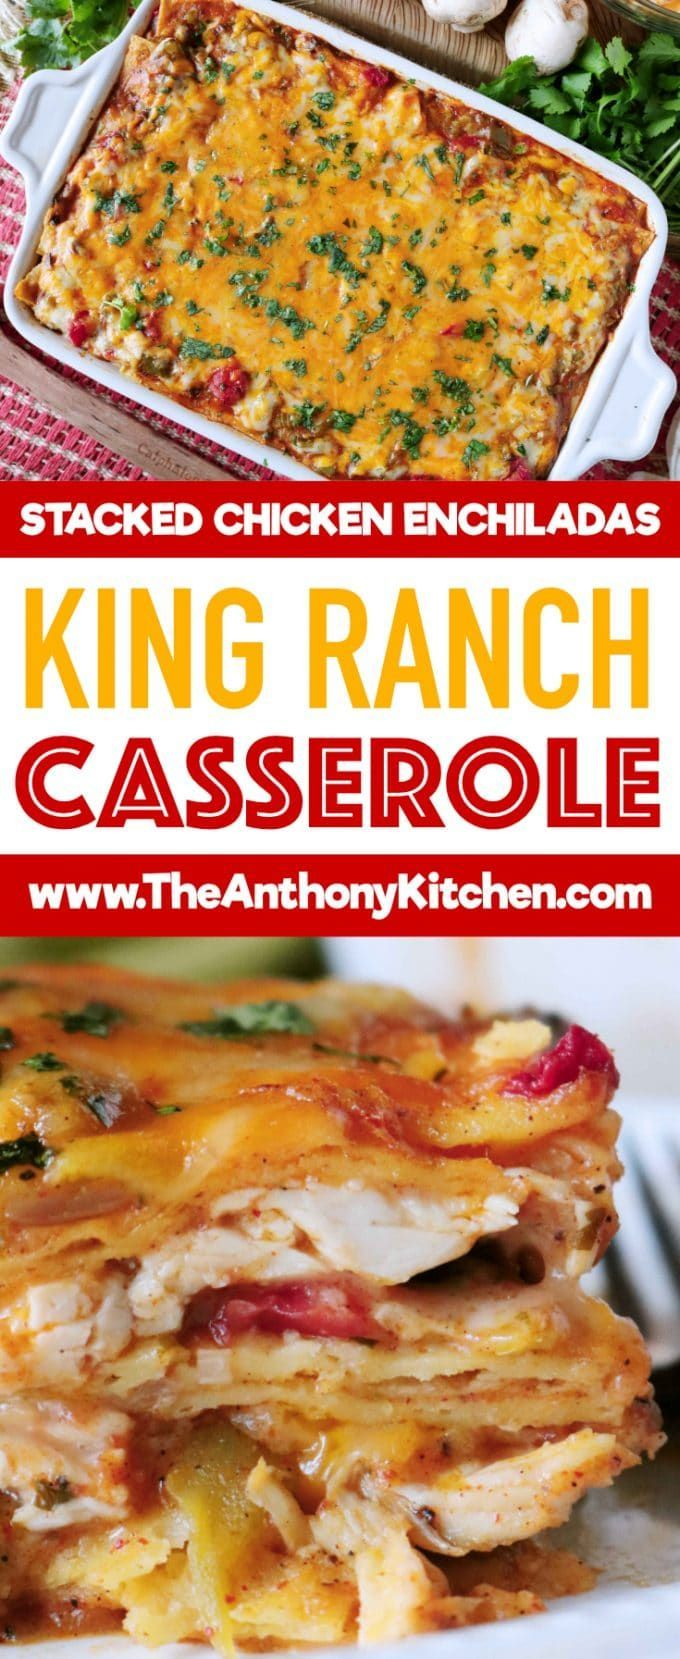 Stacked Enchilada Casserole   King Ranch Casserole   A recipe for the best King Ranch Casserole ever!  A famous Texas-born, stacked enchilada casserole featuring shredded chicken, corn tortillas, hearty vegetables, cheese, and a creamy Tex-Mex sauce   #casserolerecipes #chickendinner #stackedenchiladas #familydinner